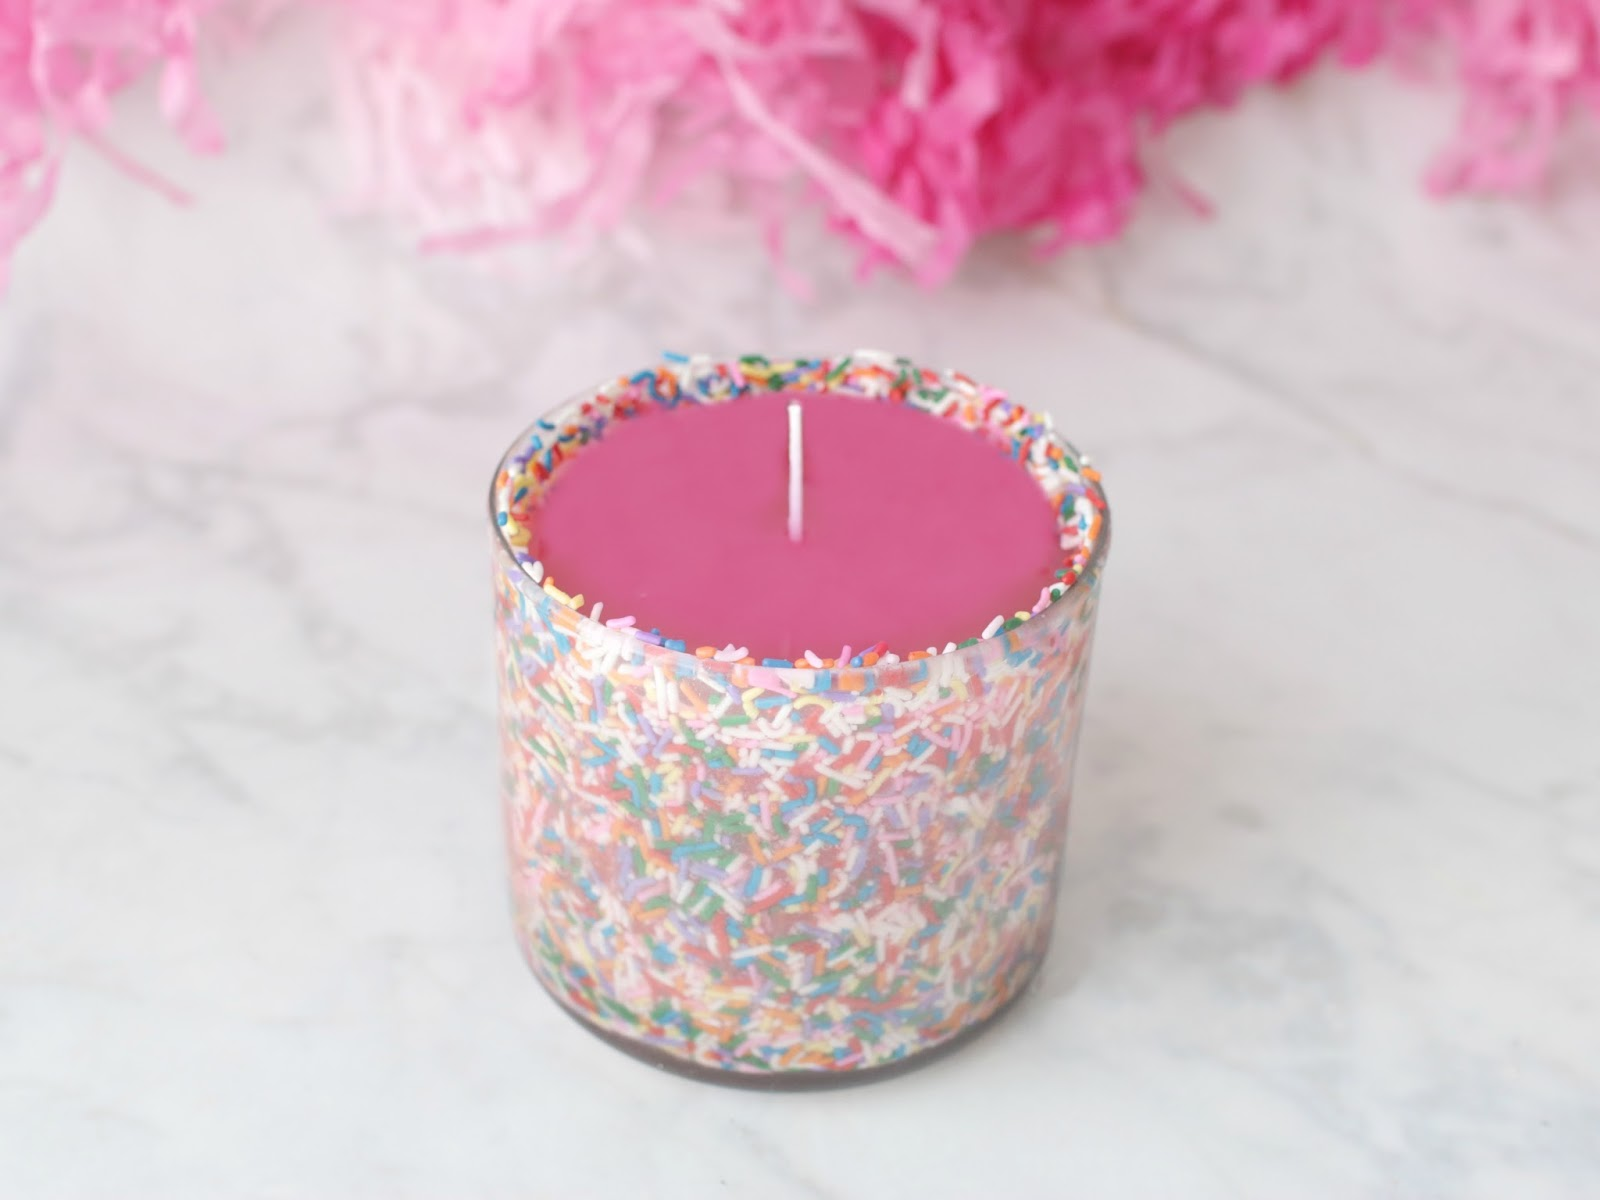 Candles With Gifts Inside Elle Sees Beauty Blogger In Atlanta Diy Sprinkles